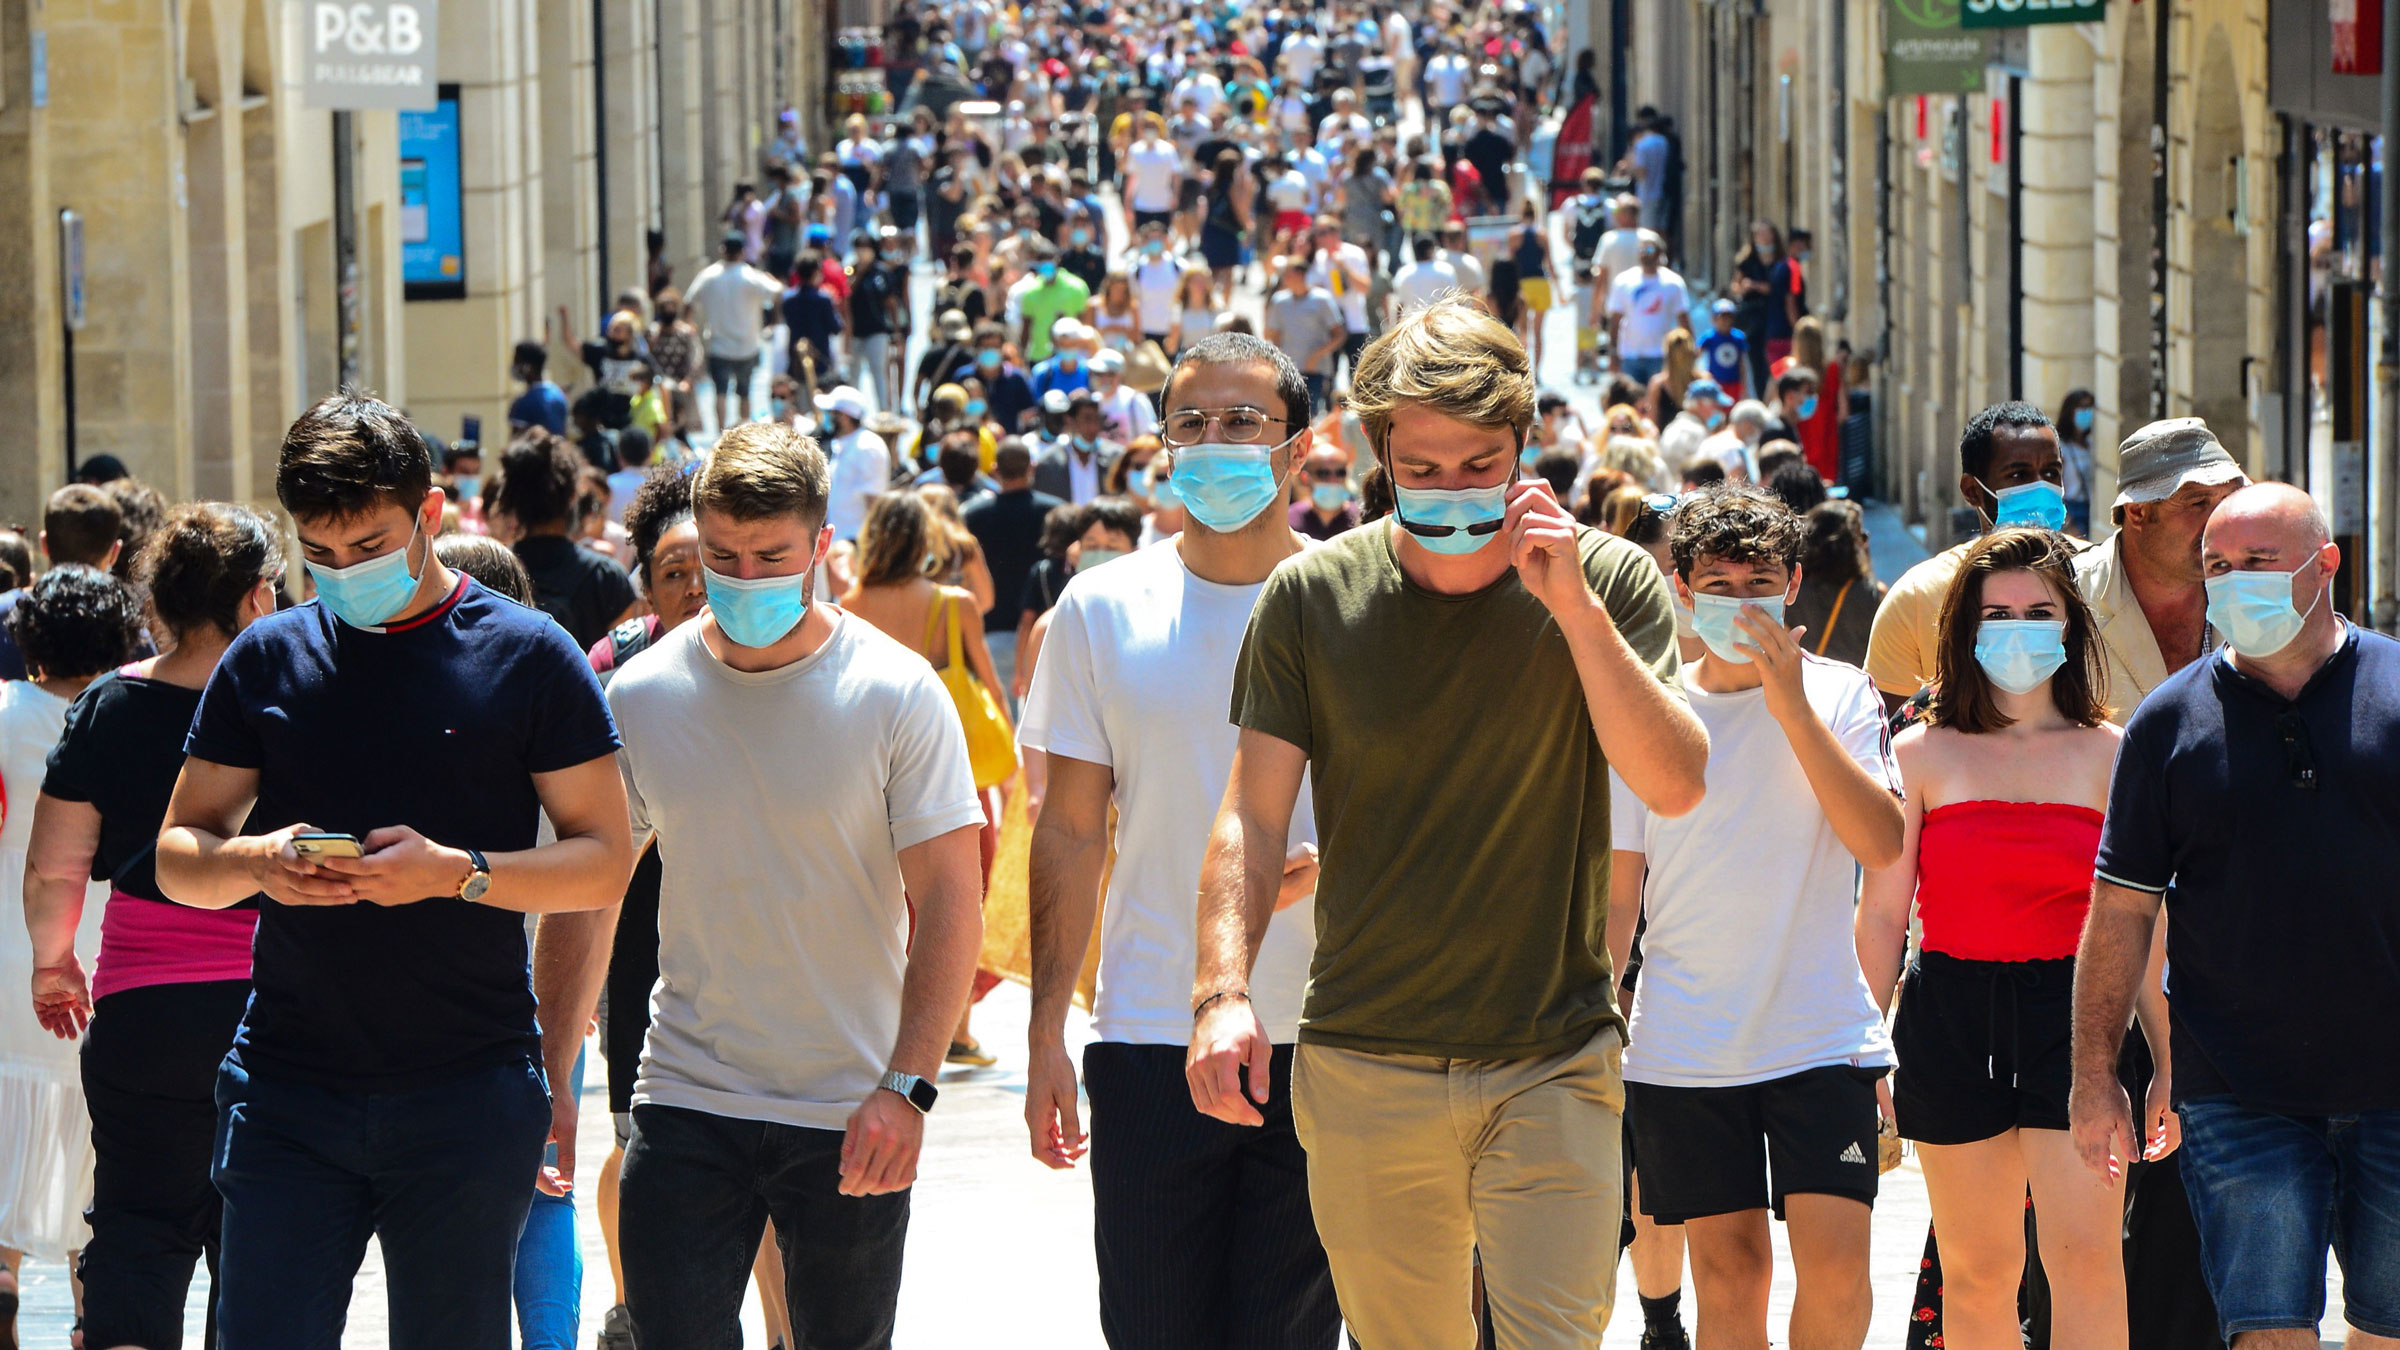 People walk on Sainte-Catherine, a main shopping street in Bordeaux, France, where wearing a mask was compulsory as of Saturday.